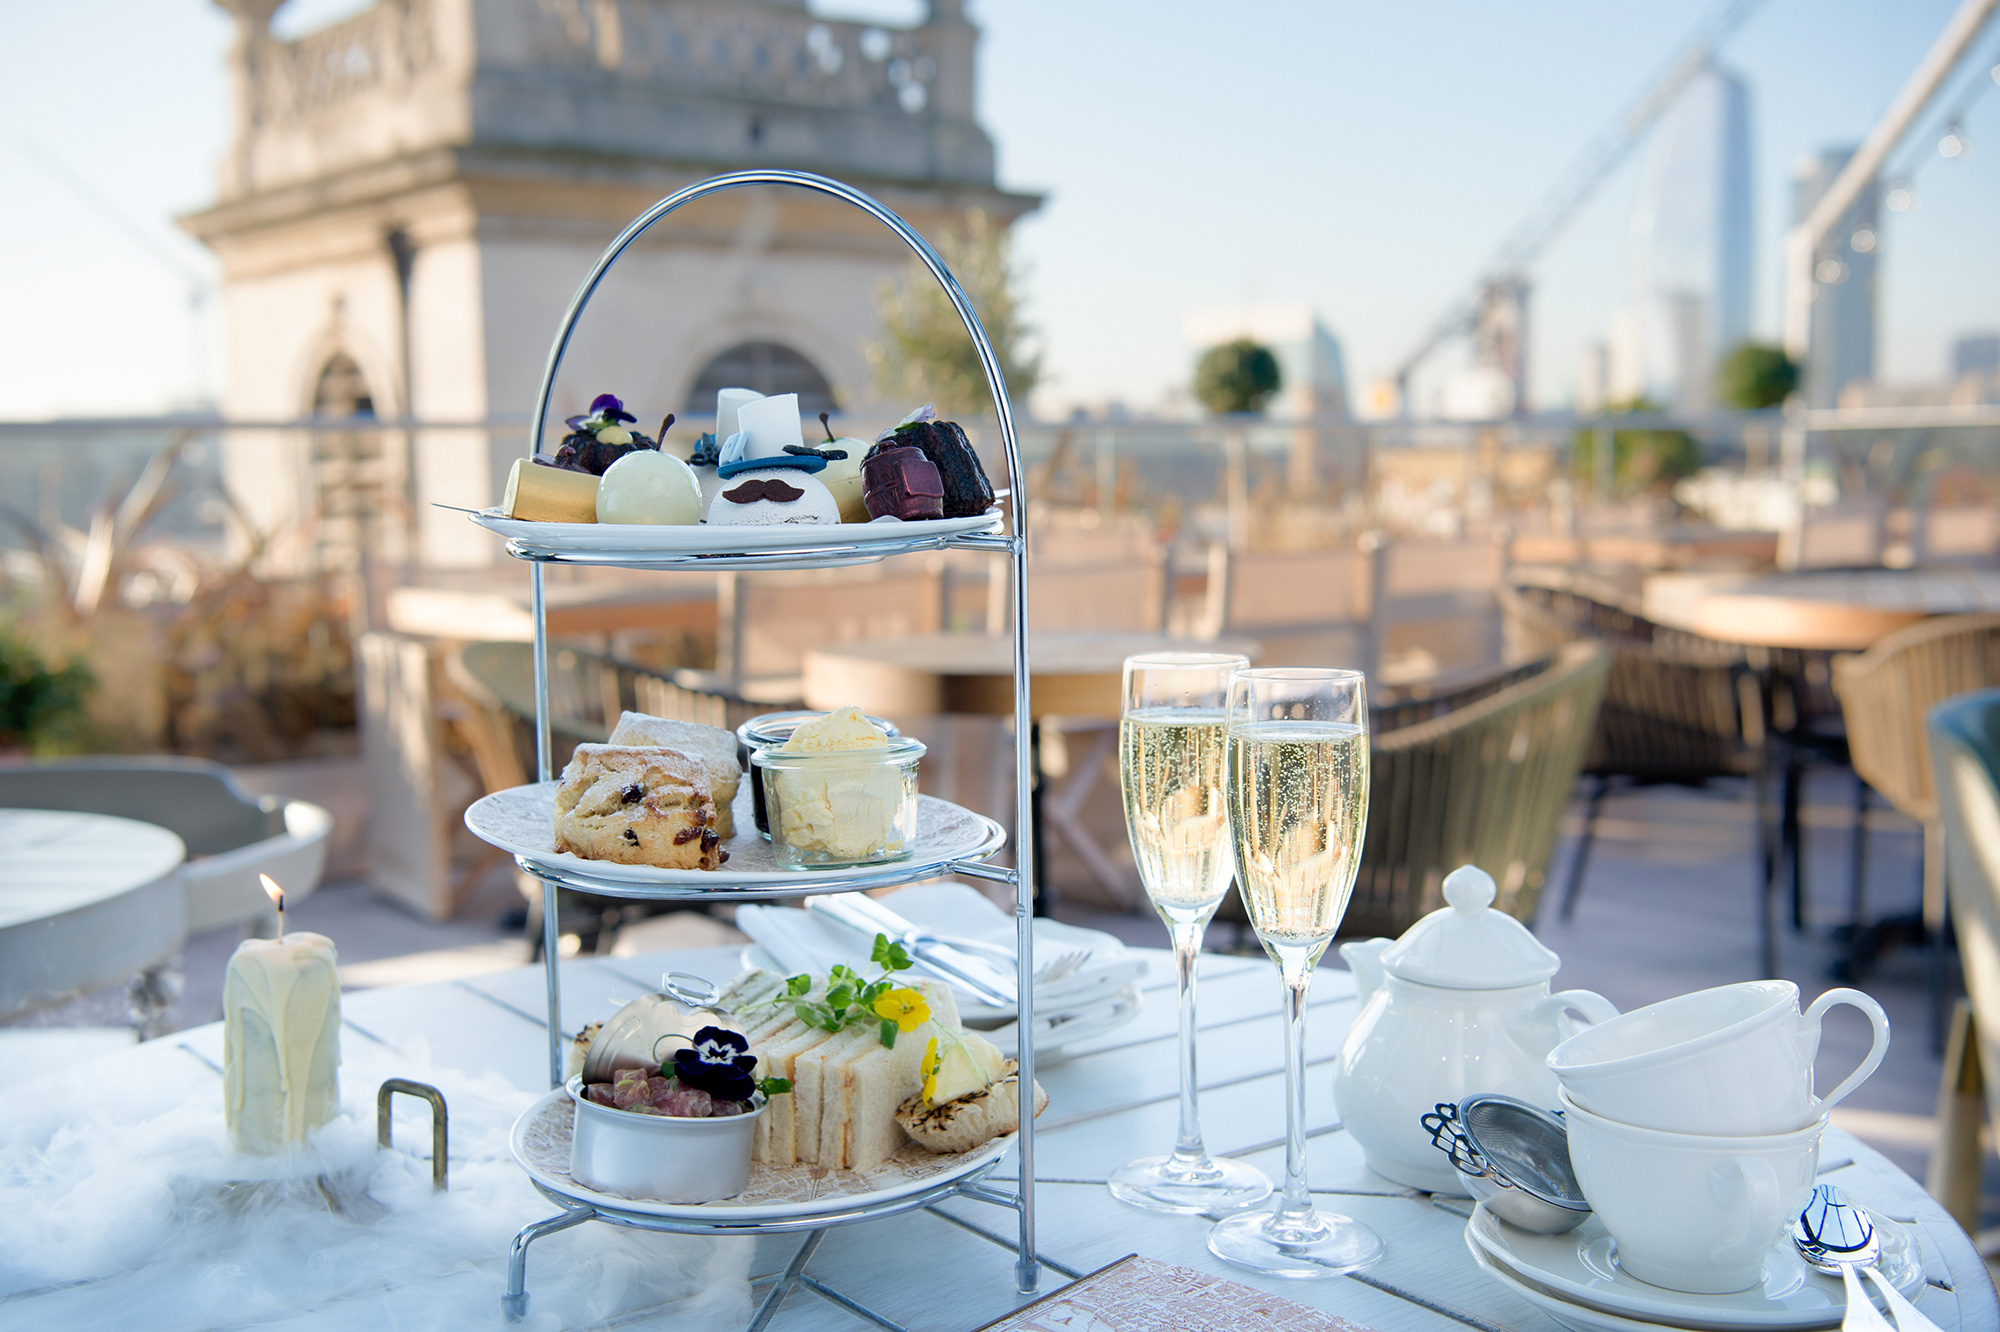 The Guilds of the City Afternoon Tea at the Mercer Roof Terrace at the Vintry & Mercer hotel. Image: Amy-Murrell